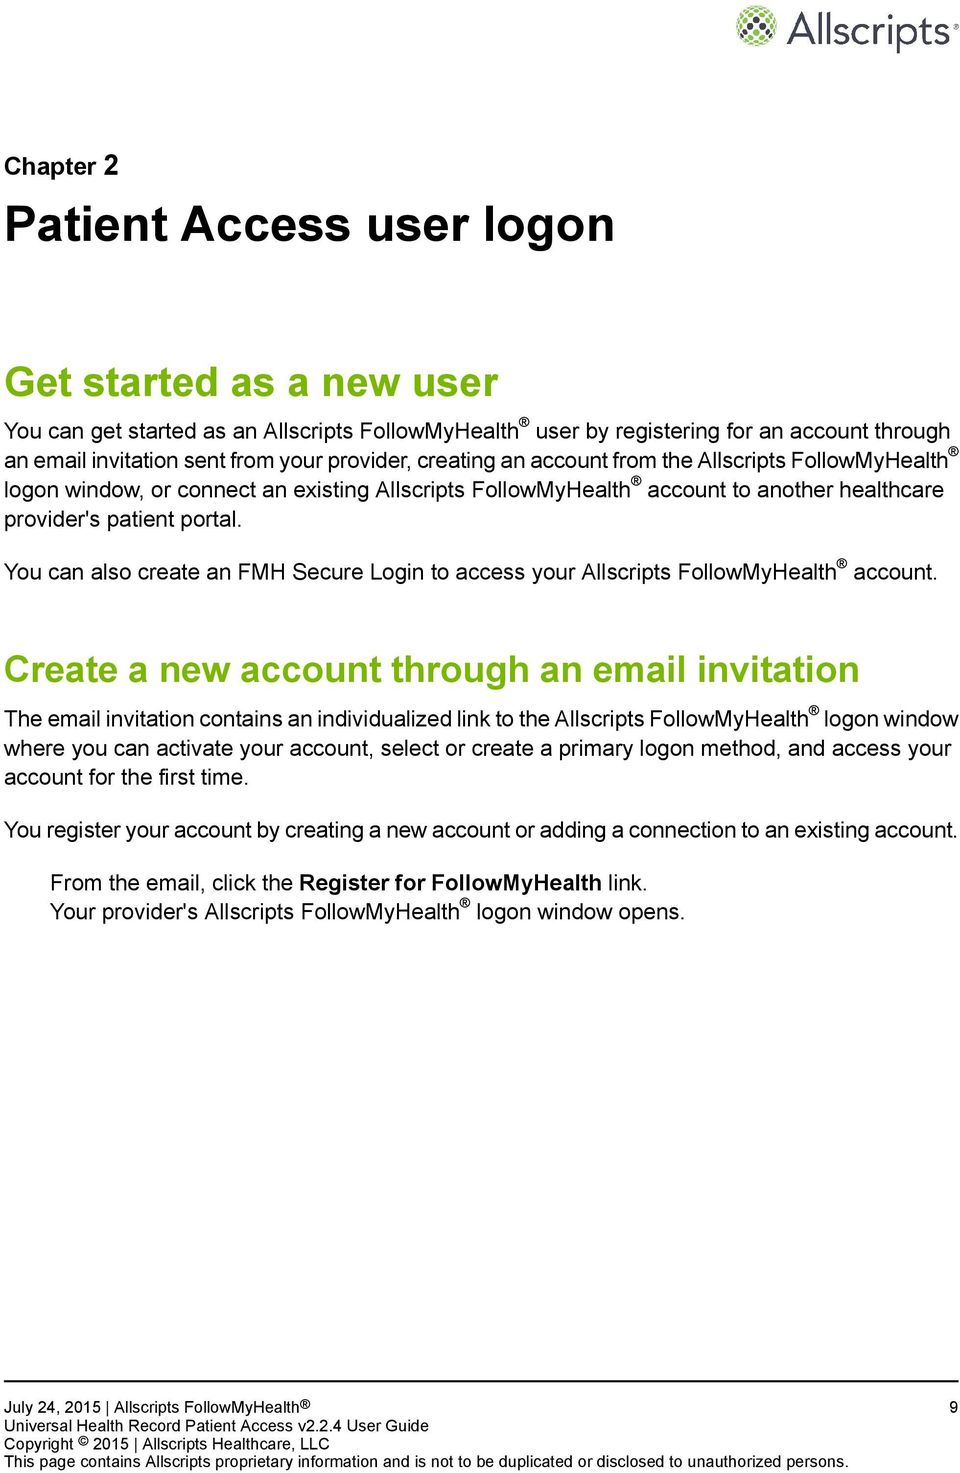 You can also create an FMH Secure Login to access your Allscripts FollowMyHealth account.